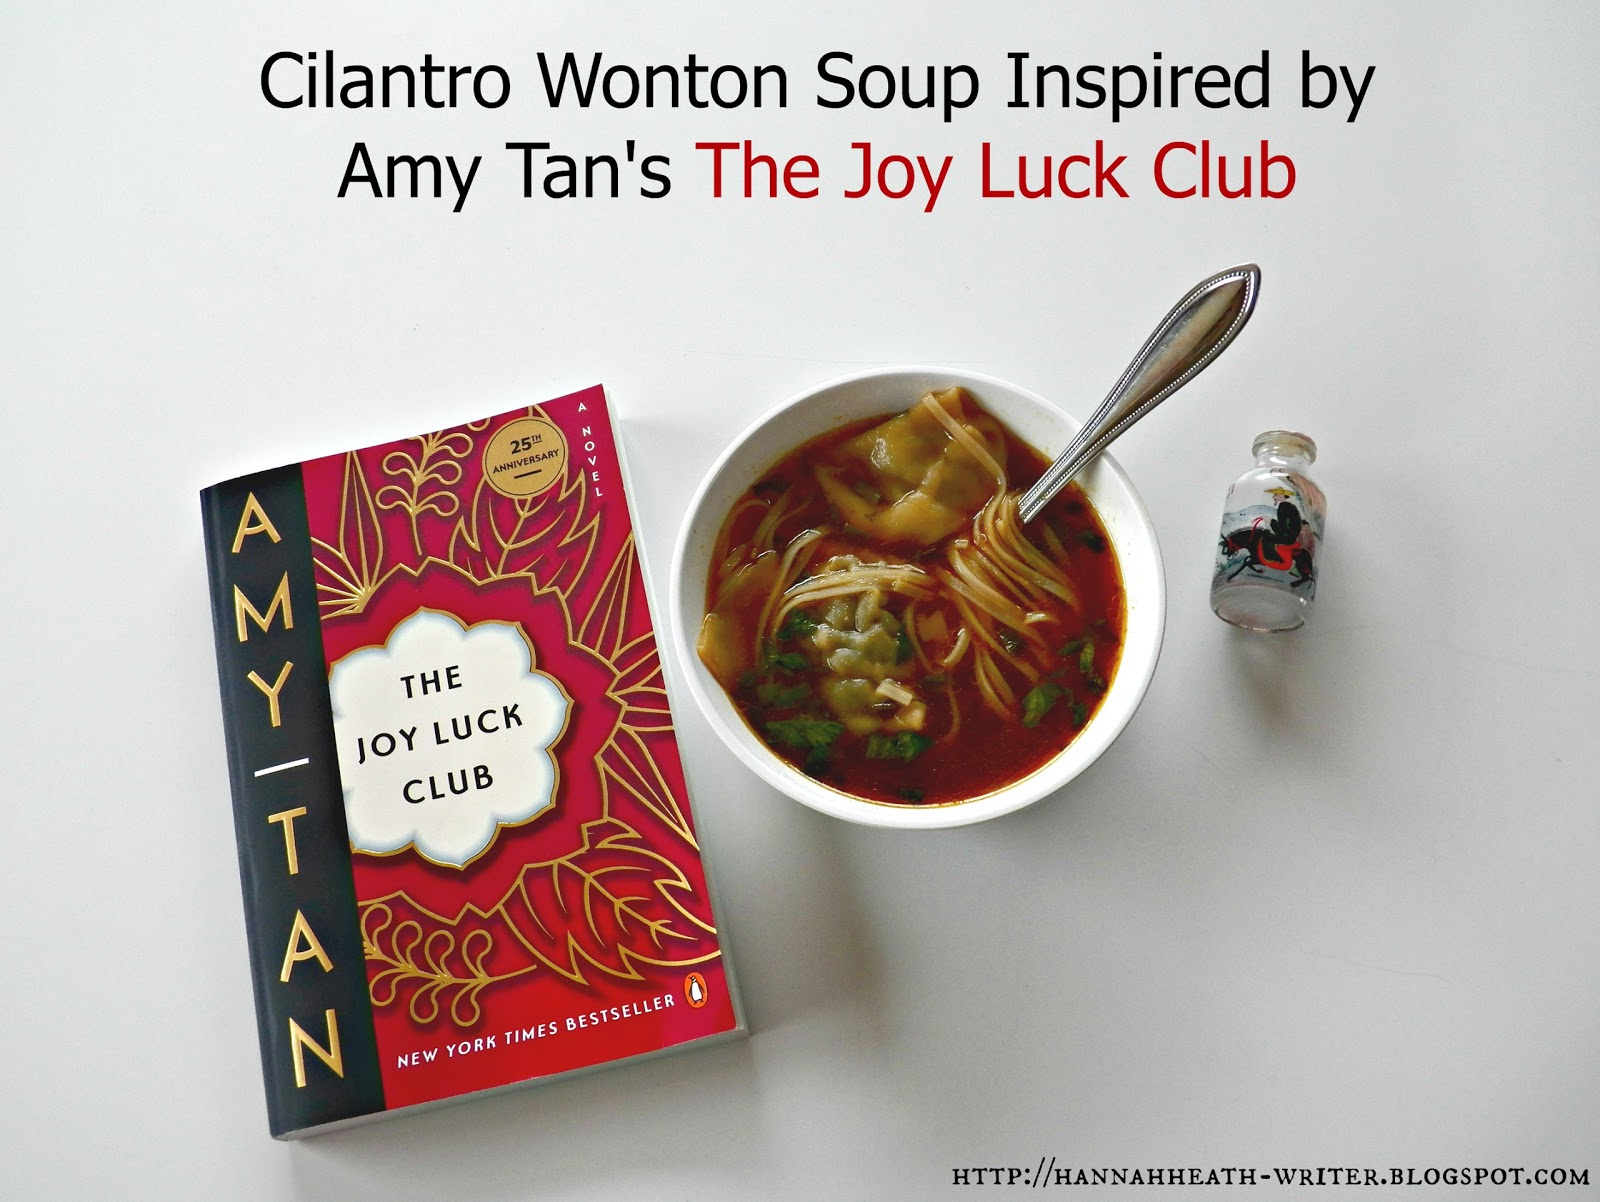 sexism in chinese cultyre as shown in the joy luck club by amy tan